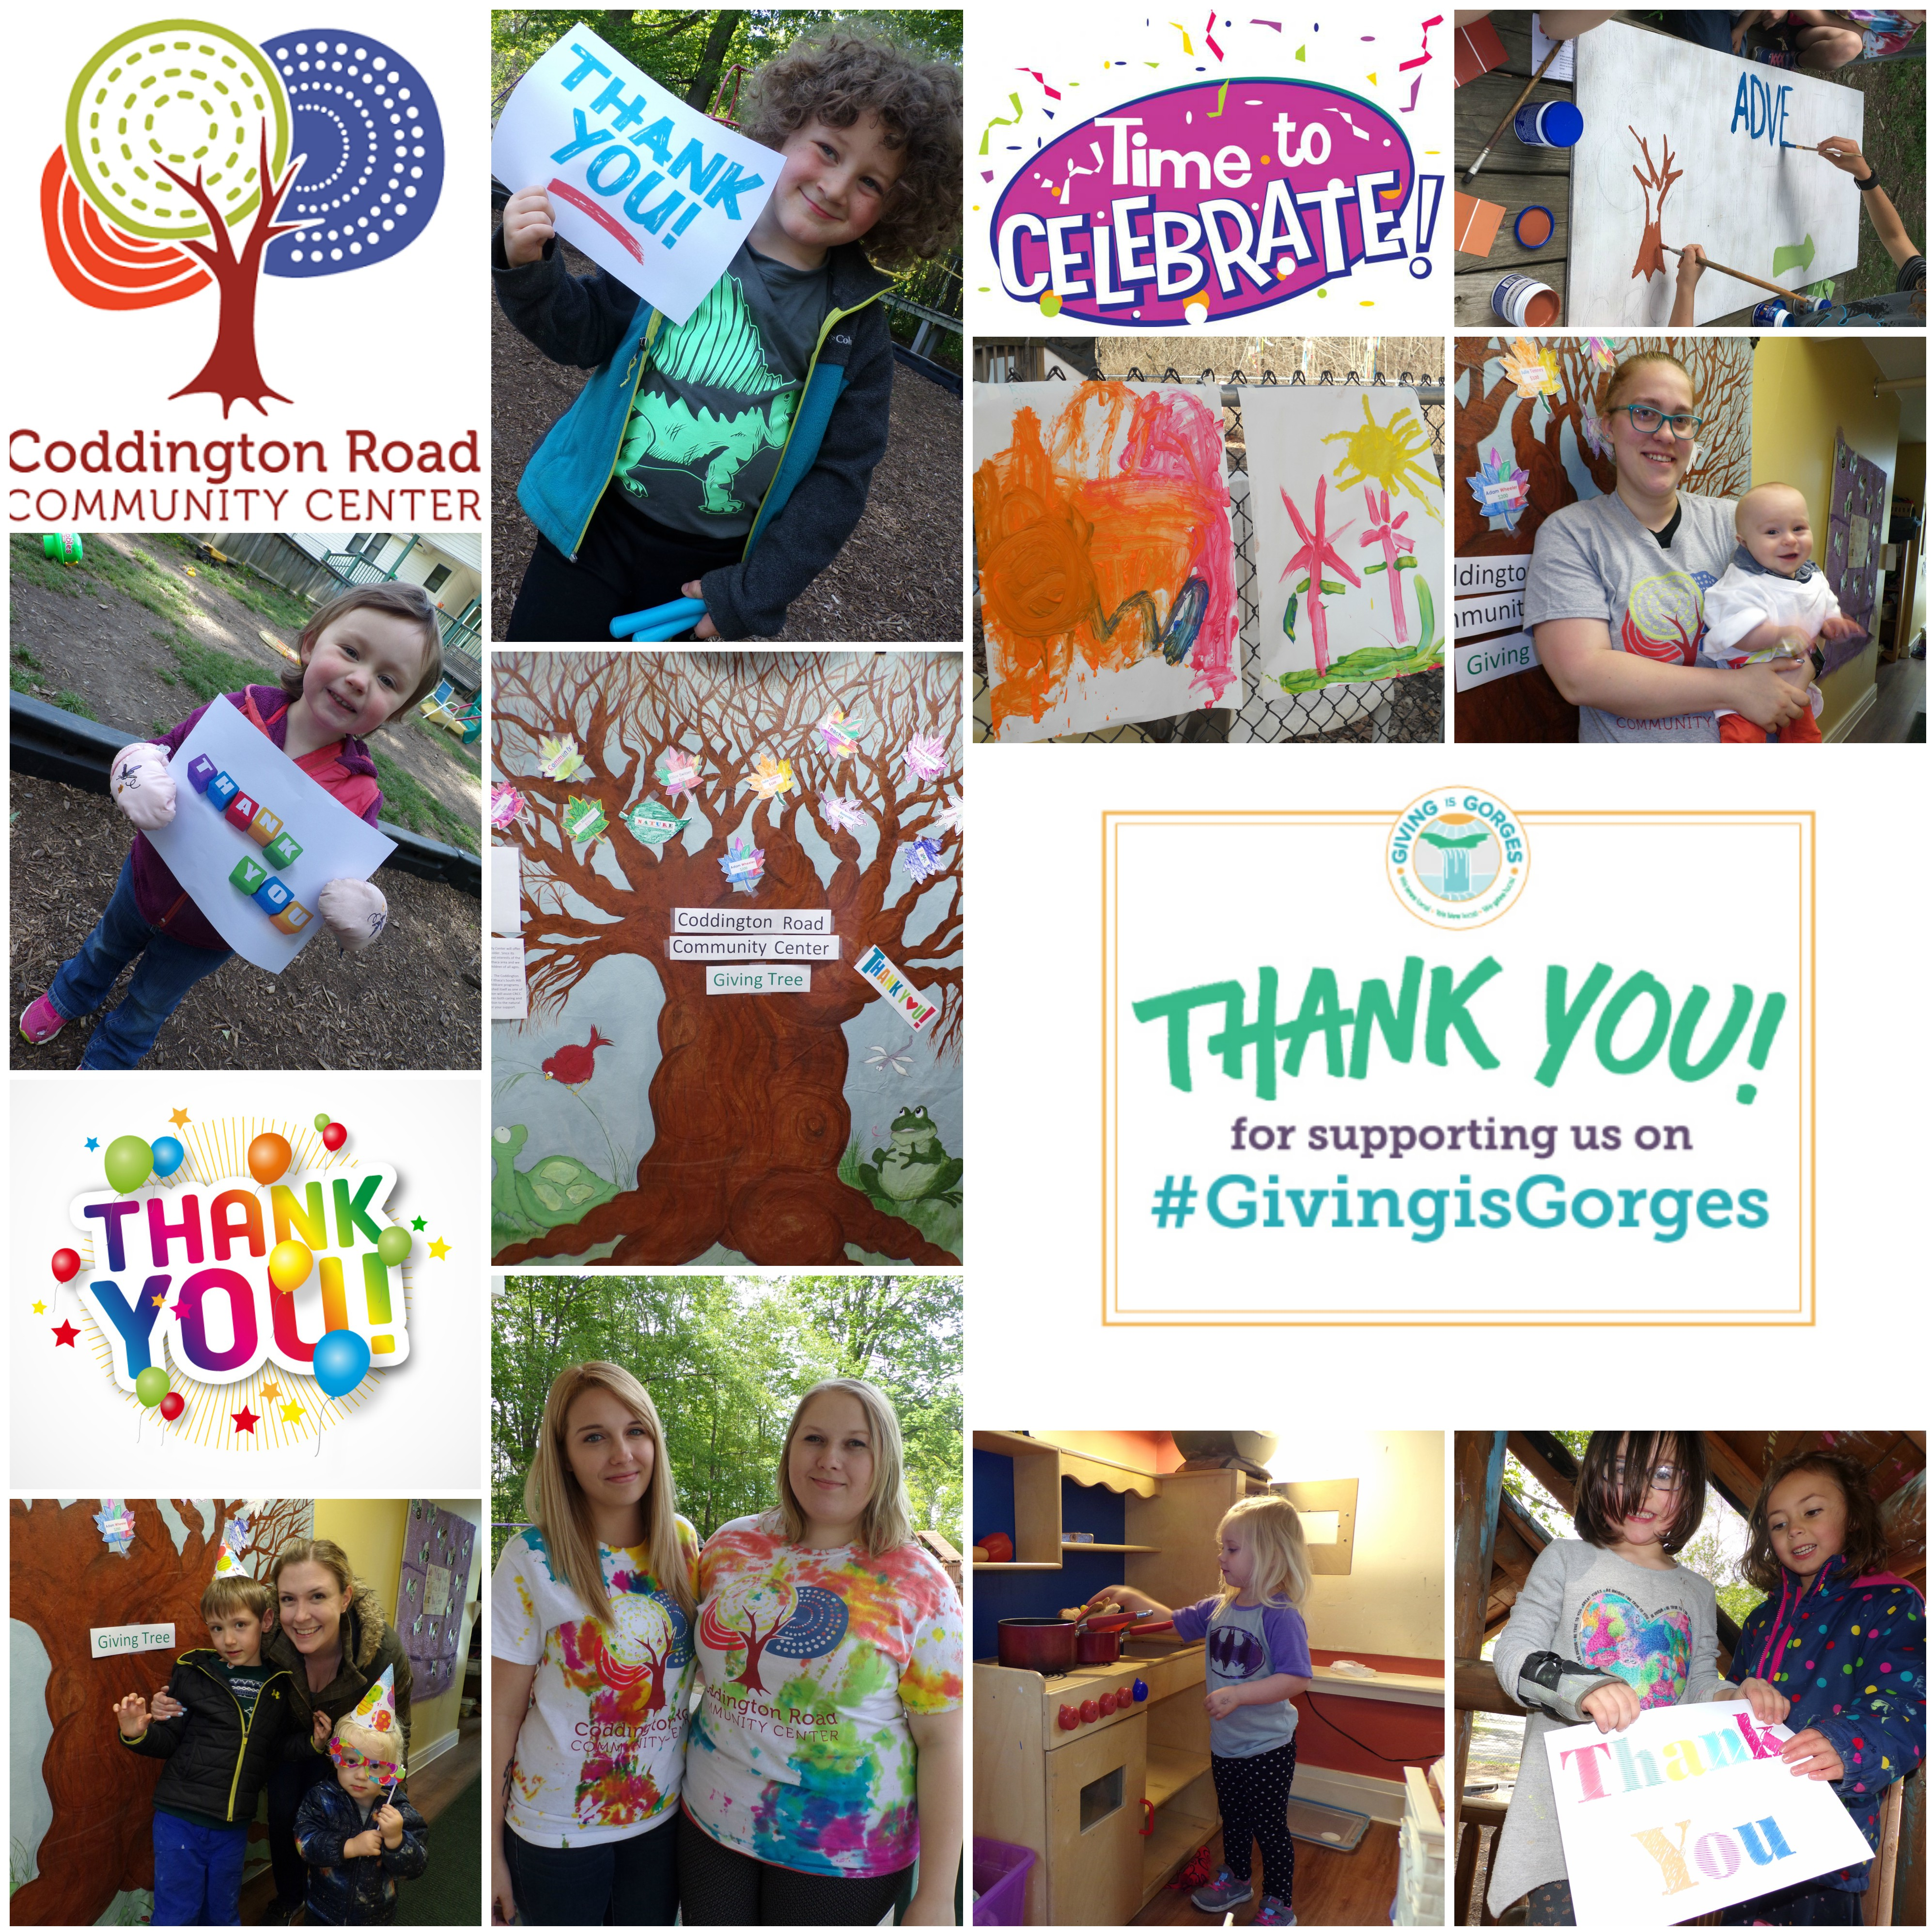 Thank you message and photograph for the donors of Coddington's Giving is Gorges campaign.